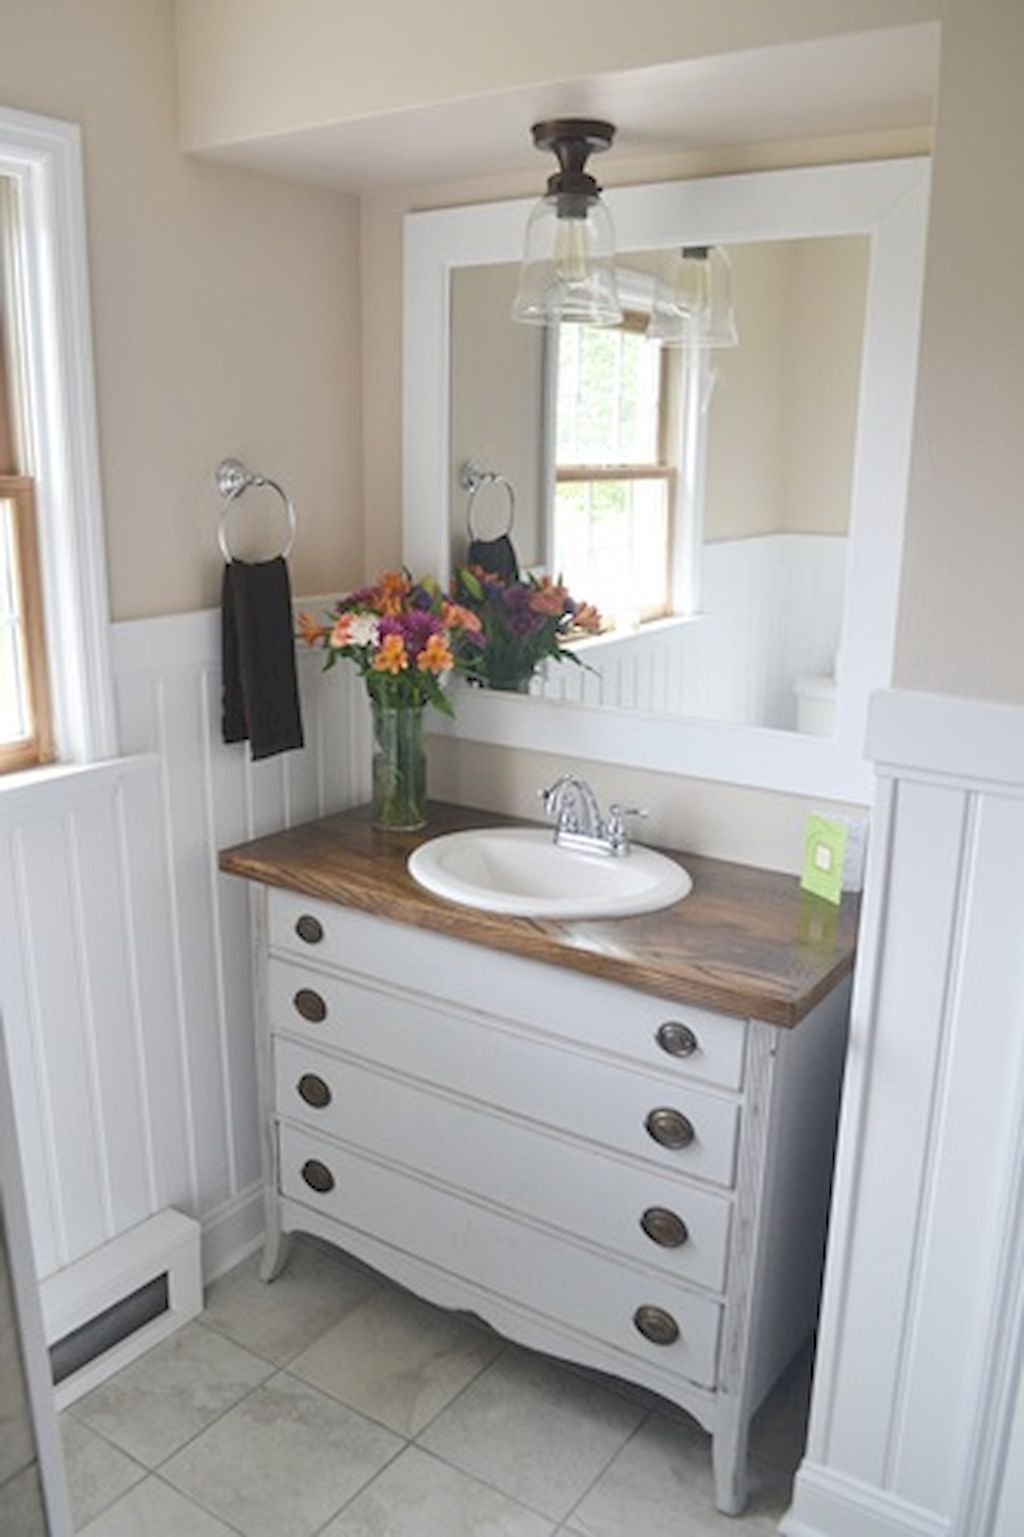 Fresh And Cool Small Bathroom Remodel Ideas On A Budget 41 Cool Bathroom Renovation Ideas For Tight Budget Design Inspiration